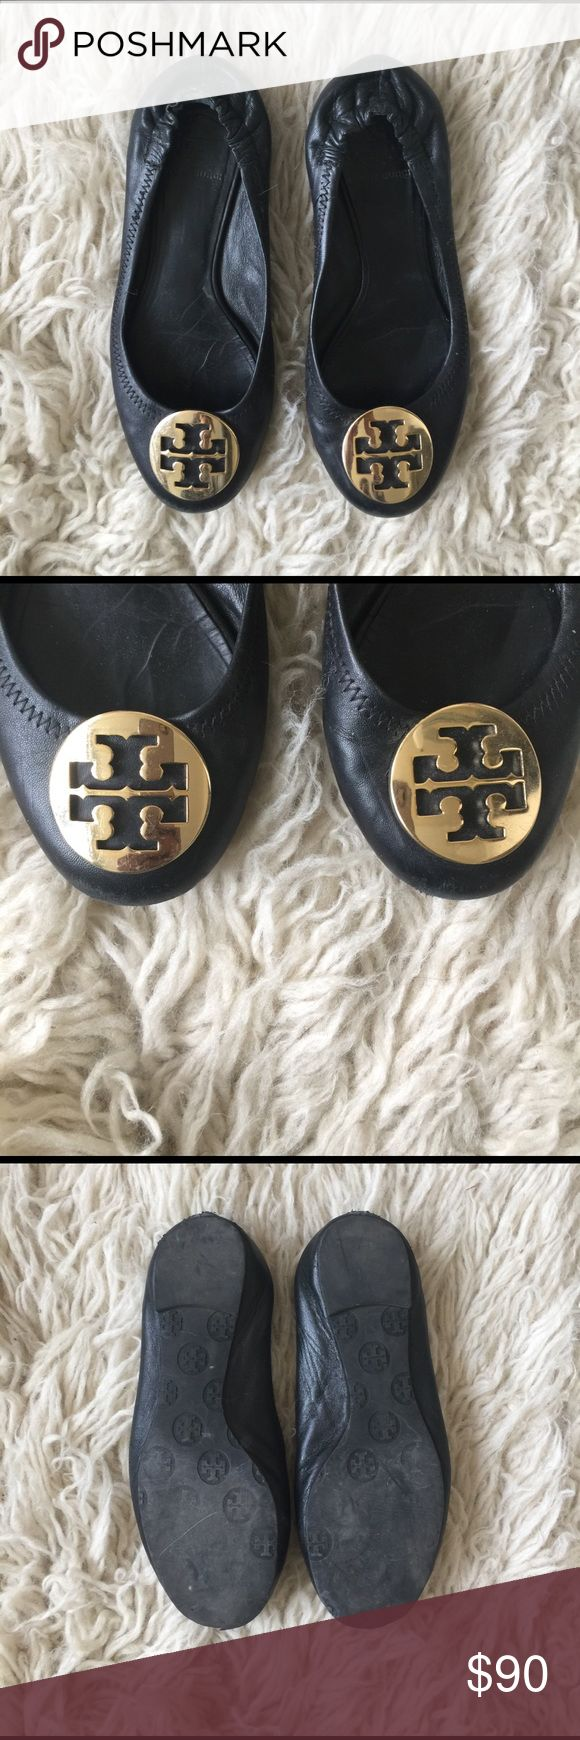 Tory Burch 7 Gold & Black Tory burch authentic flats. I had the box forever but threw it away since I live in a small loft. Has wear. True 7 Tory Burch Shoes Flats & Loafers